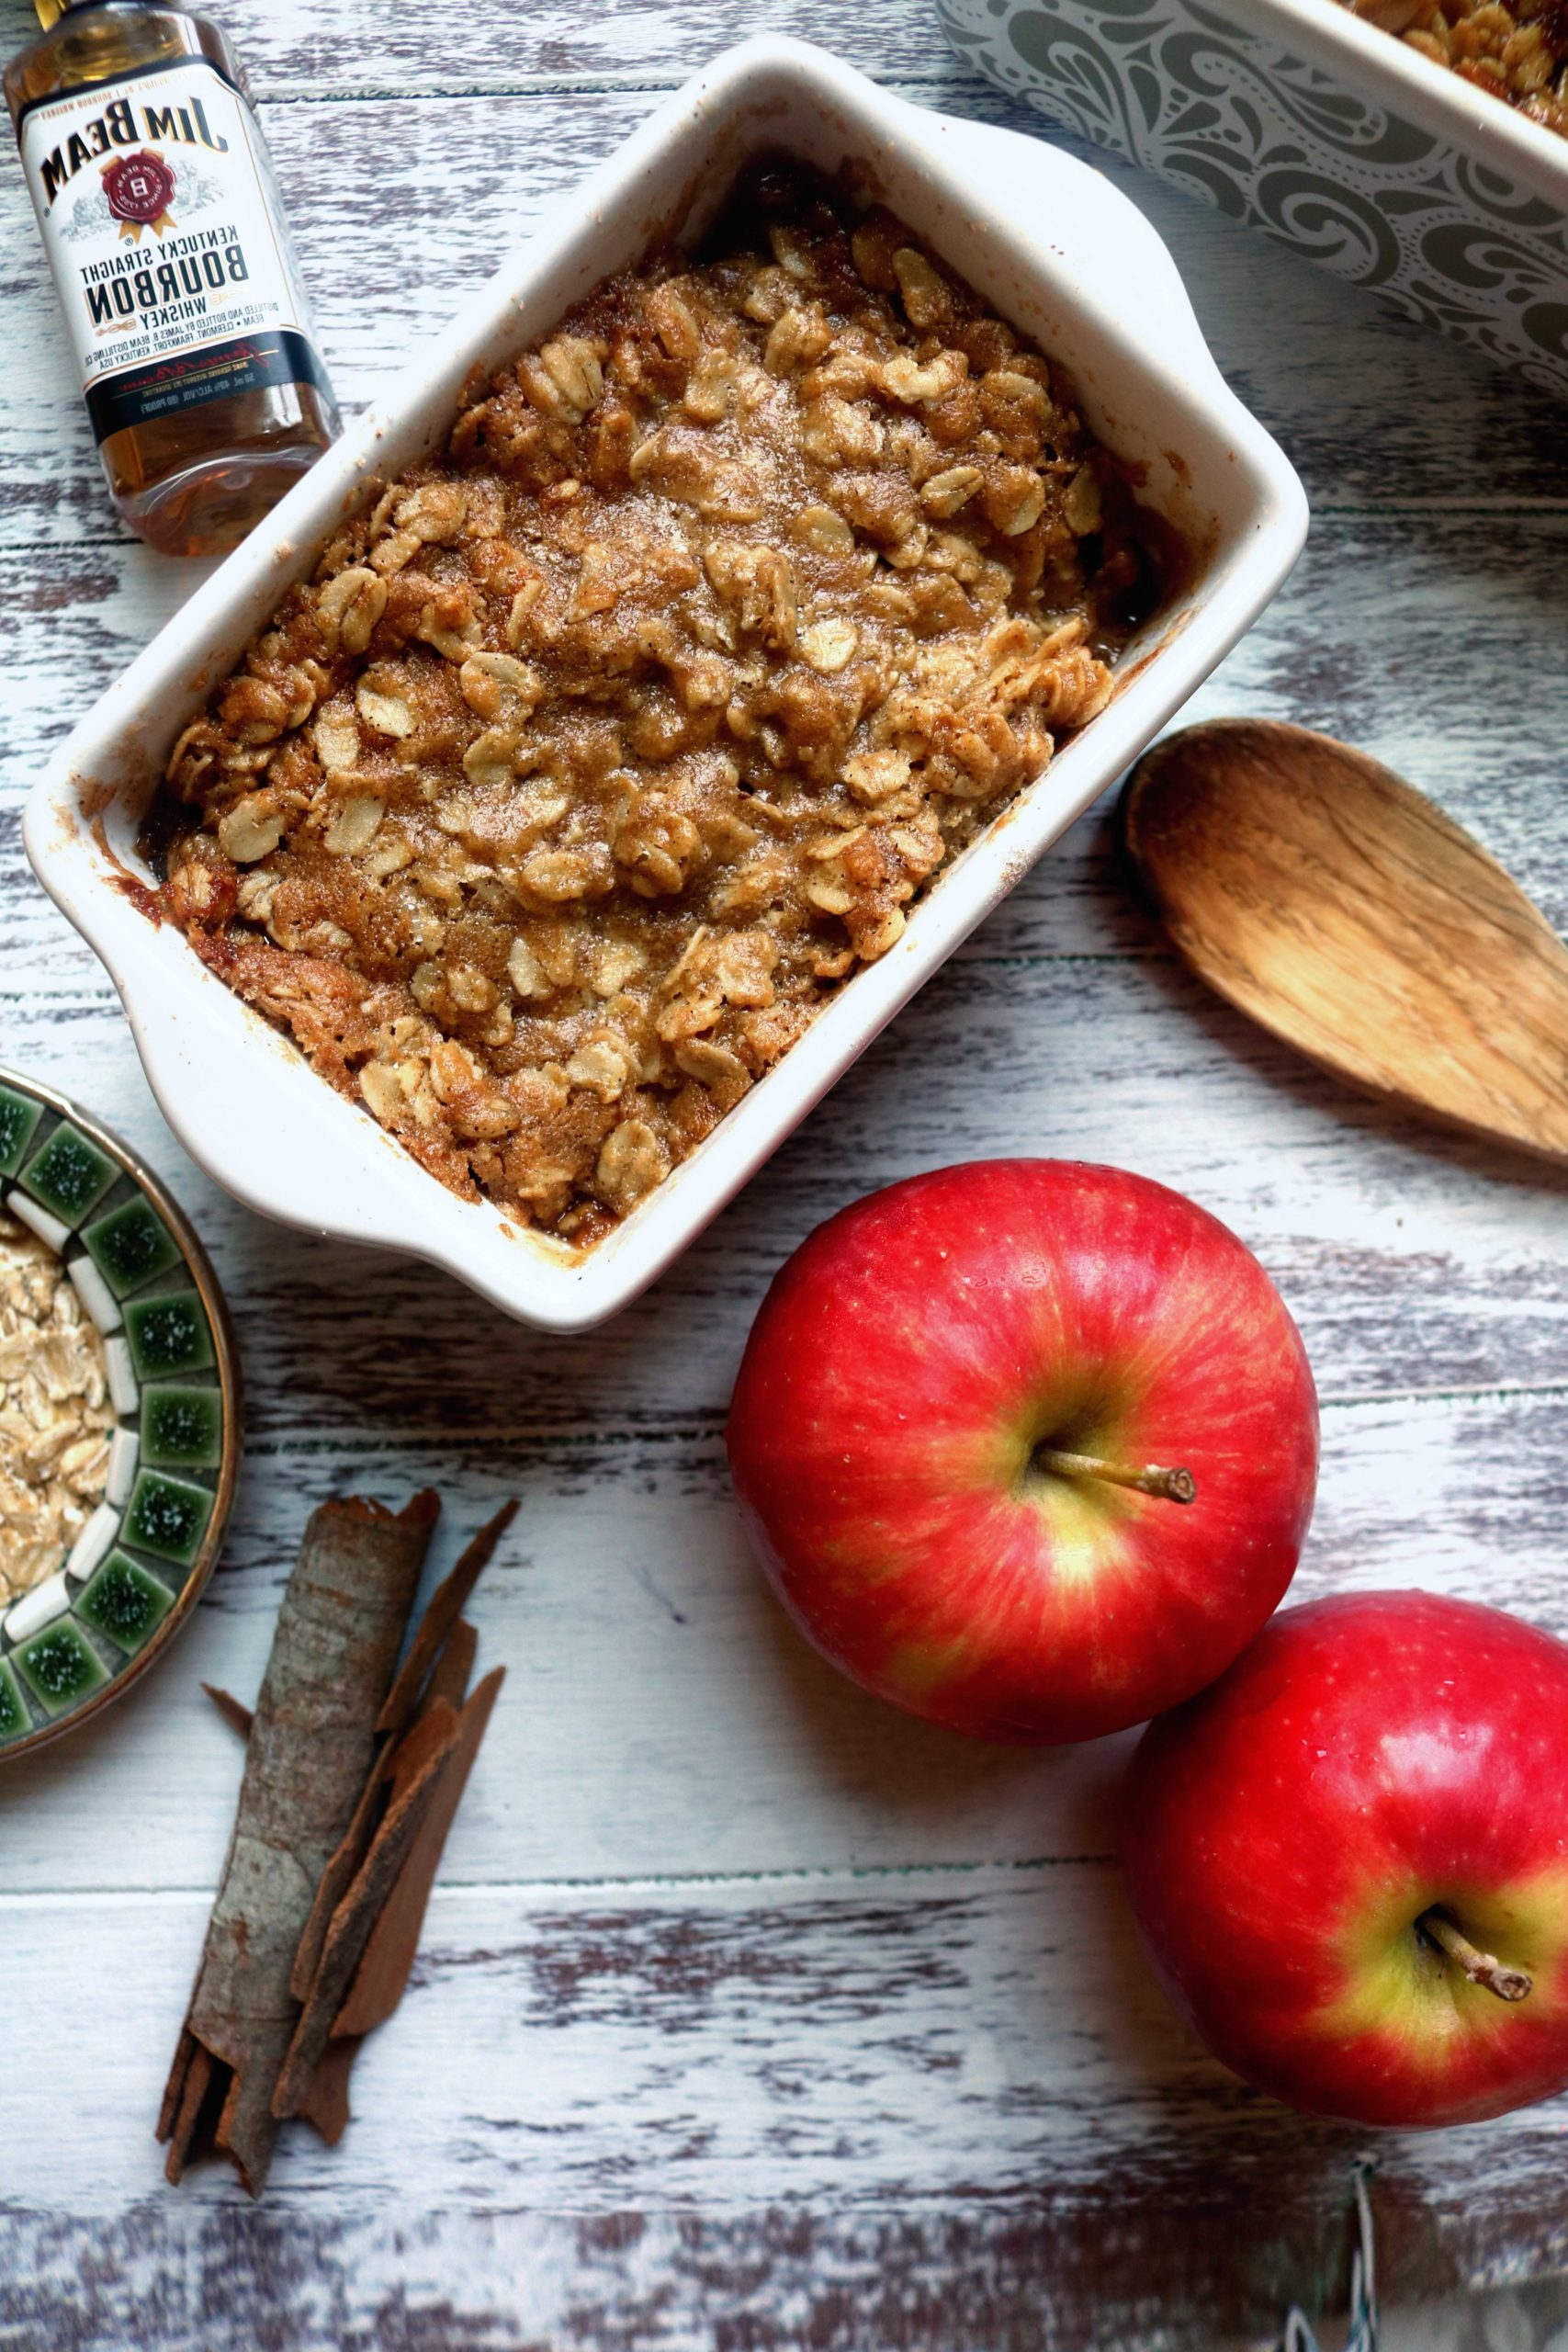 Bourbon apple crisp recipe for Mabon, the Fall Equinox or Thanksgiving.